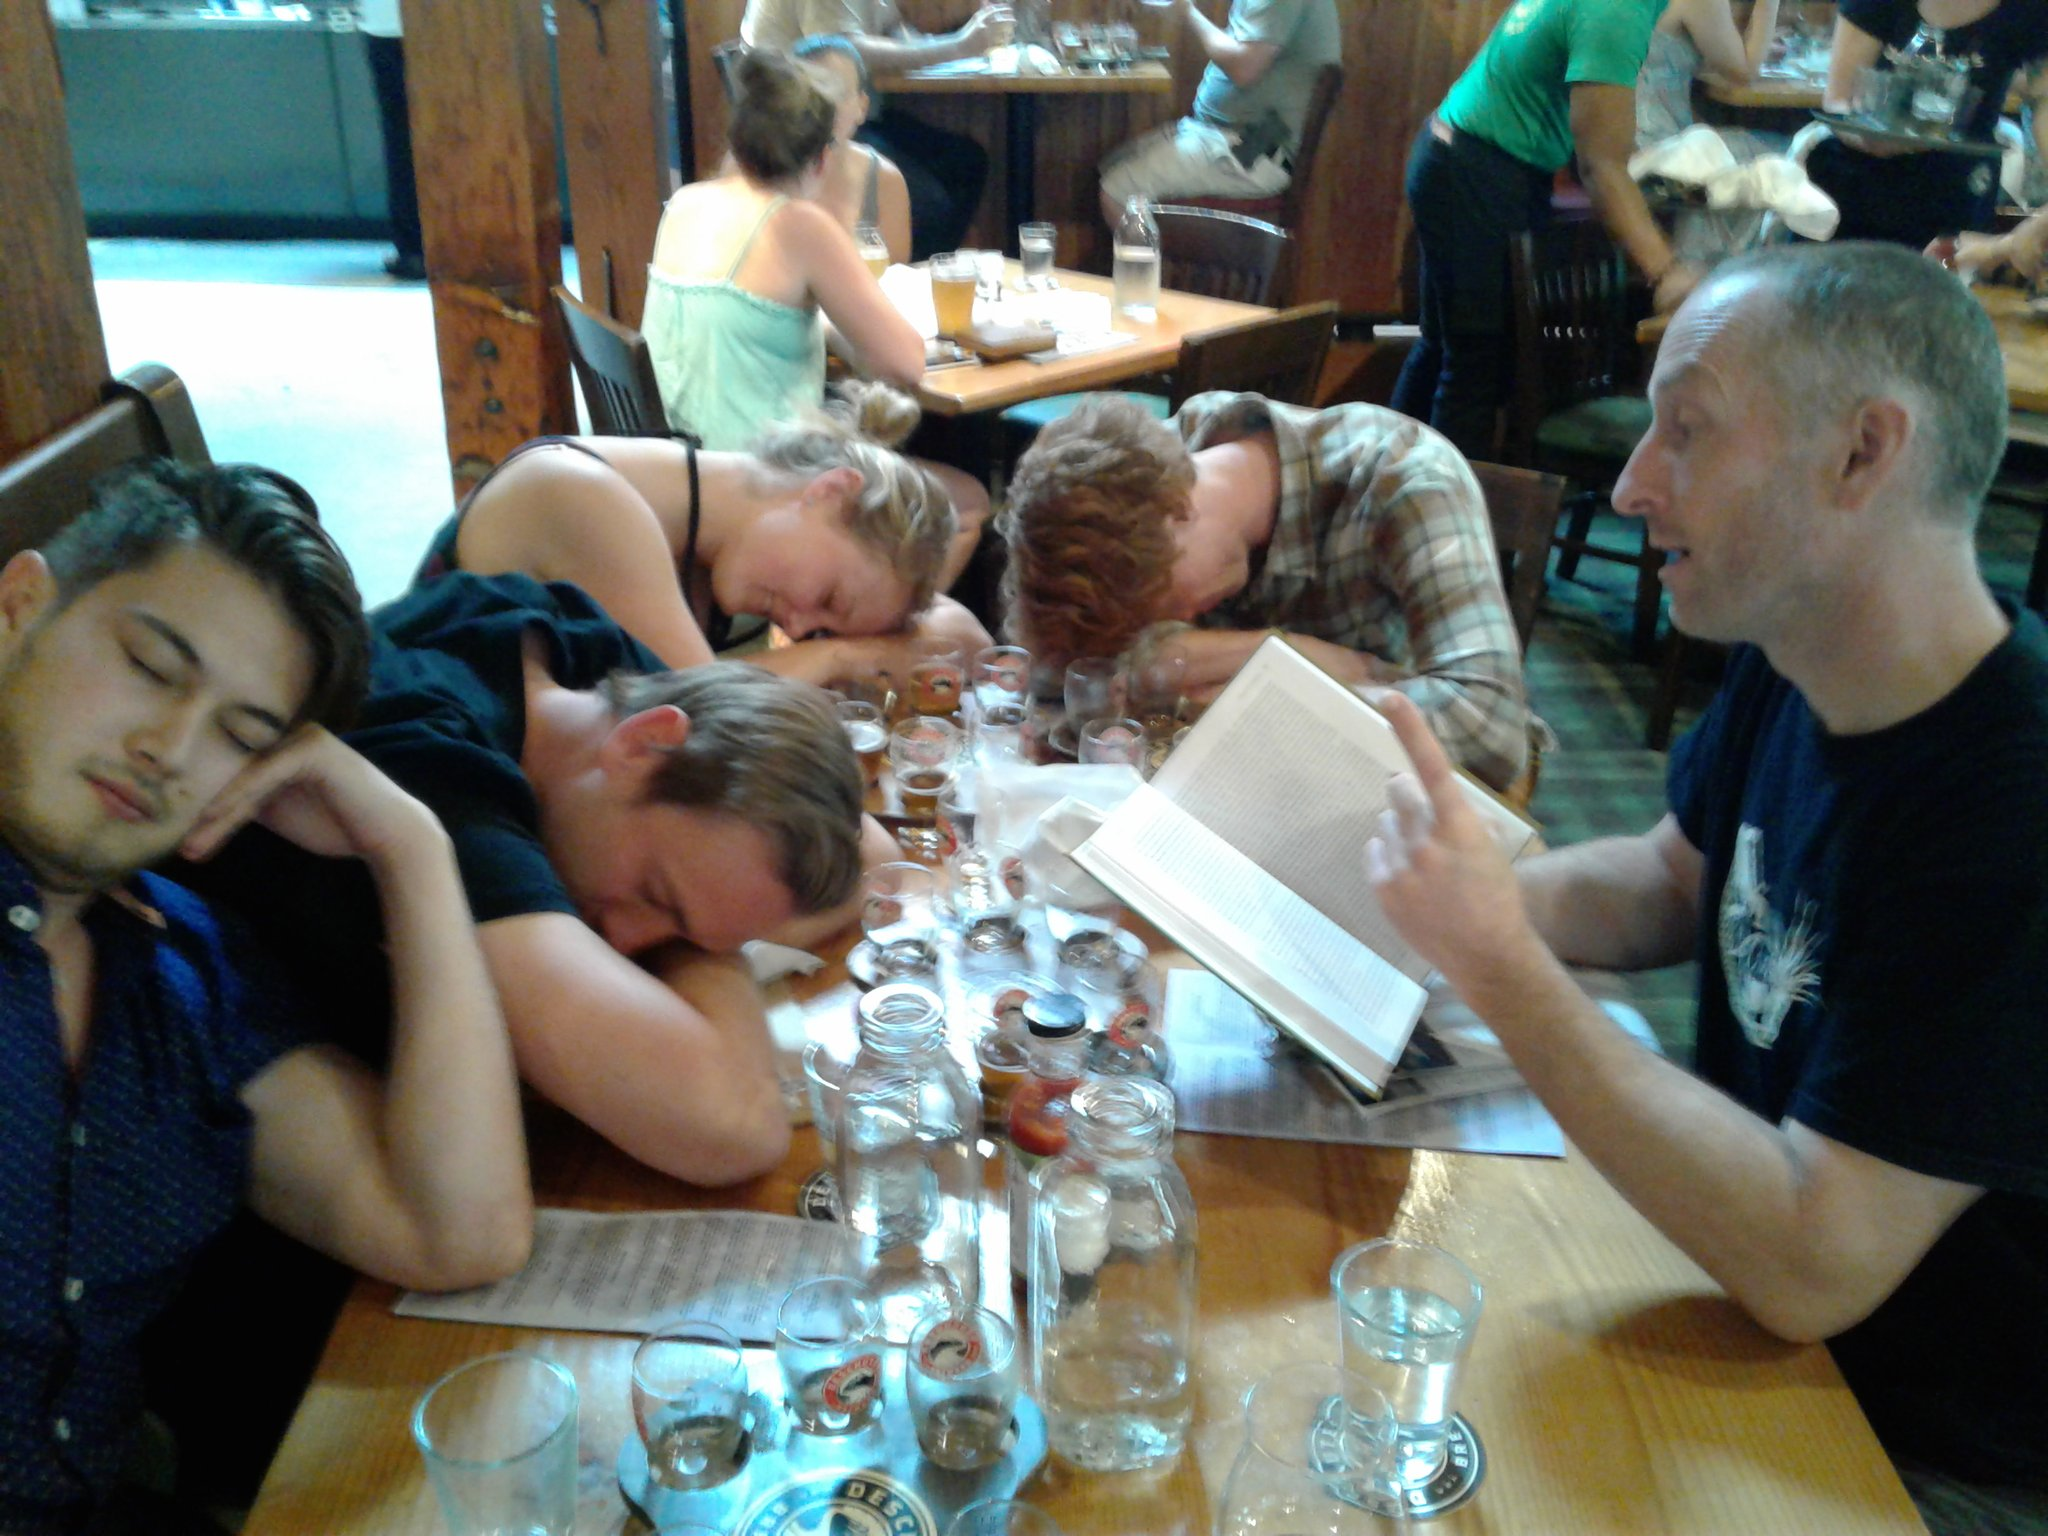 Students invited me to lunch and then had the nerve to fall asleep. #PeopleWhoFellAsleepReadingMyBook #evol2017 https://t.co/nesZ0ZWyFR